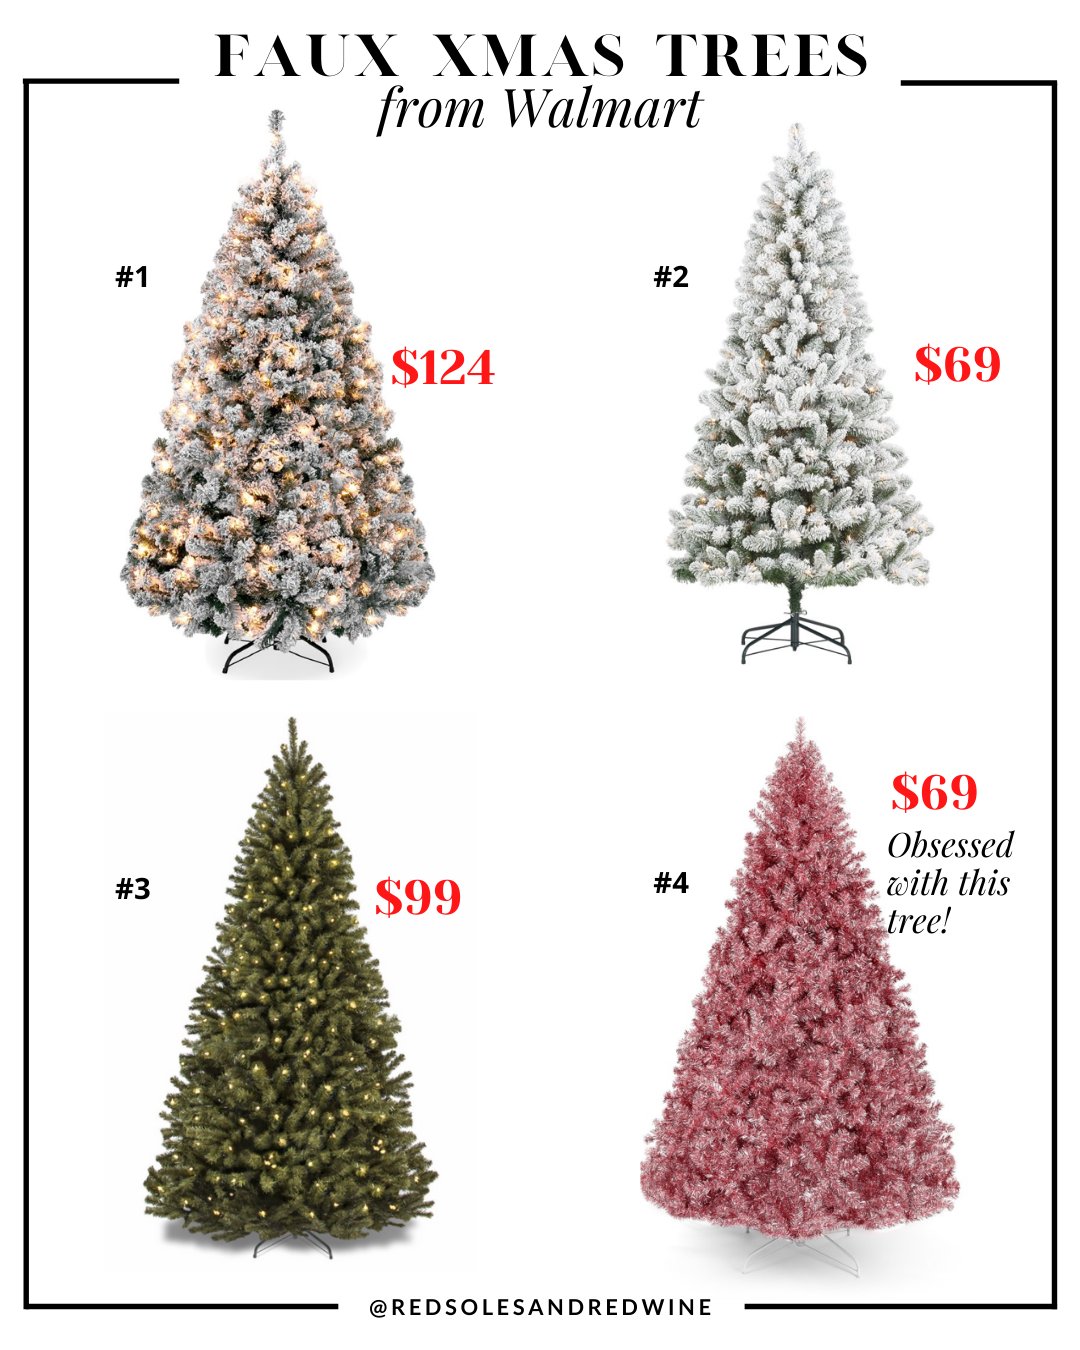 affordable artificial Christmas trees from Walmart, affordable artificial Christmas trees, affordable faux christmas trees, realistic looking faux christmas trees, faux xmas trees, christmas tree decorating ideas, christmas tree inspiration, faux christmas tree decor inspiration, holiday decor, Red Soles and Red Wine, Jennifer Worman